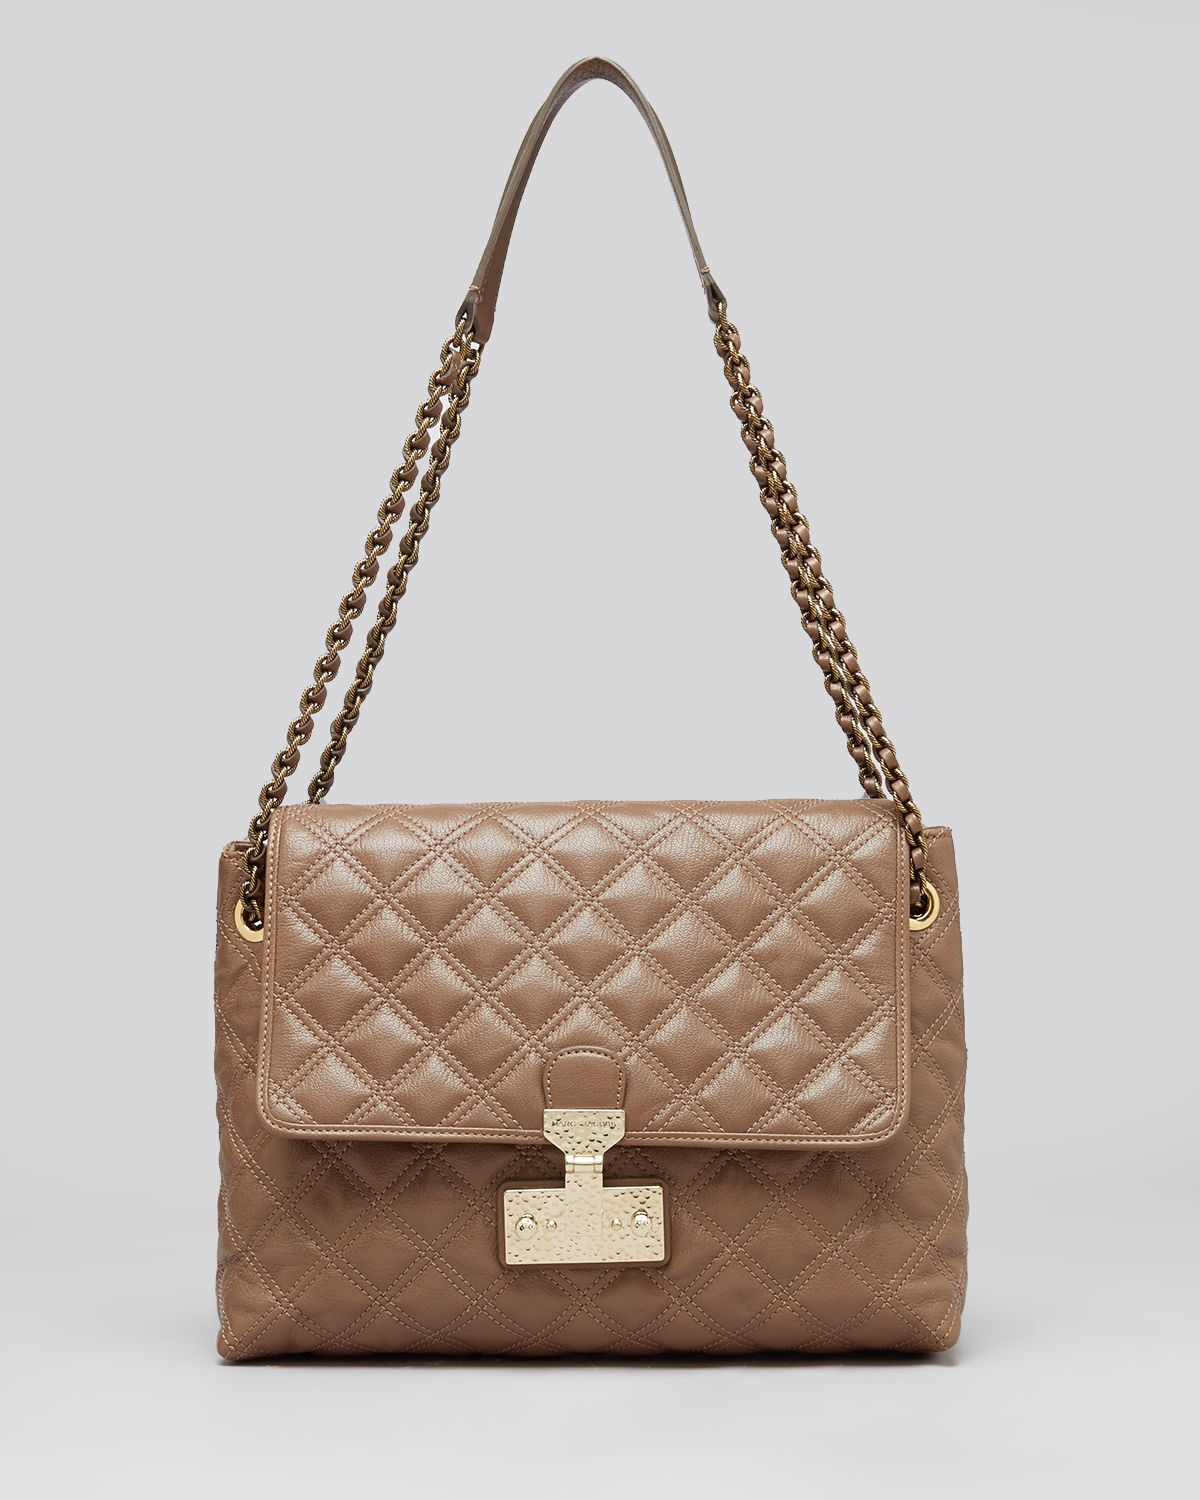 Marc jacobs Shoulder Bag Quilted Baroque Xl Single in Brown   Lyst : marc jacobs quilted bags - Adamdwight.com